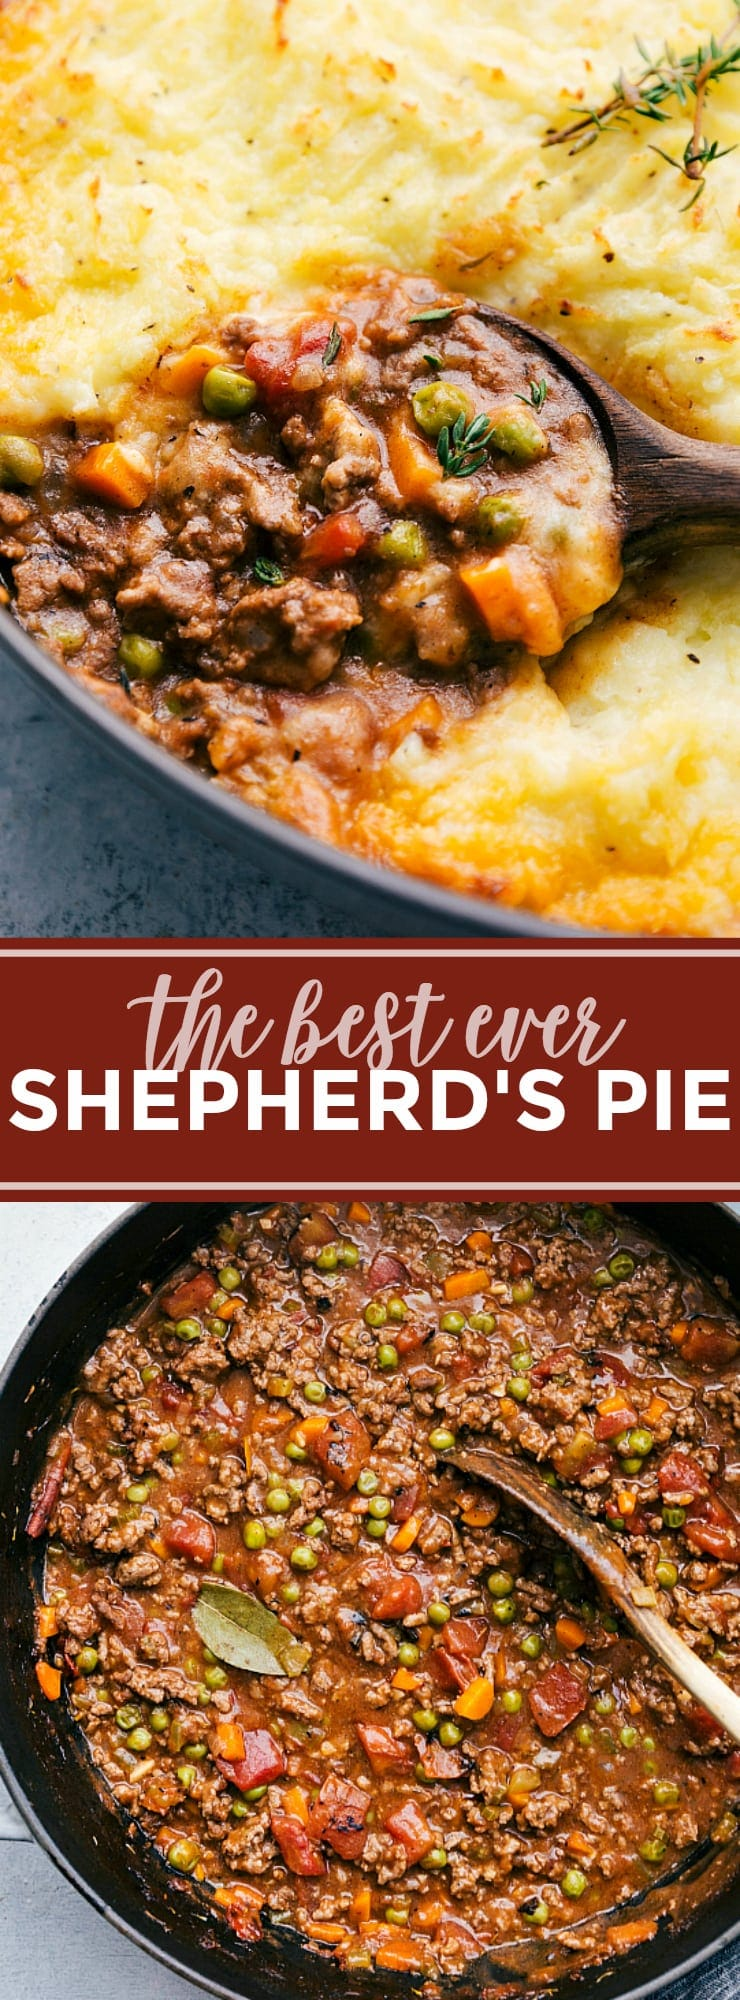 The ultimate BEST EVER Shepherd's Pie! A delicious and simple dinner! via chelseasmessyapron.com #shepherd #pie #dinner #casserole #easy #quick #holiday #leftover #leftovers #beef #gravy #vegetables #healthy #potatoes #mashed #kidfriendly